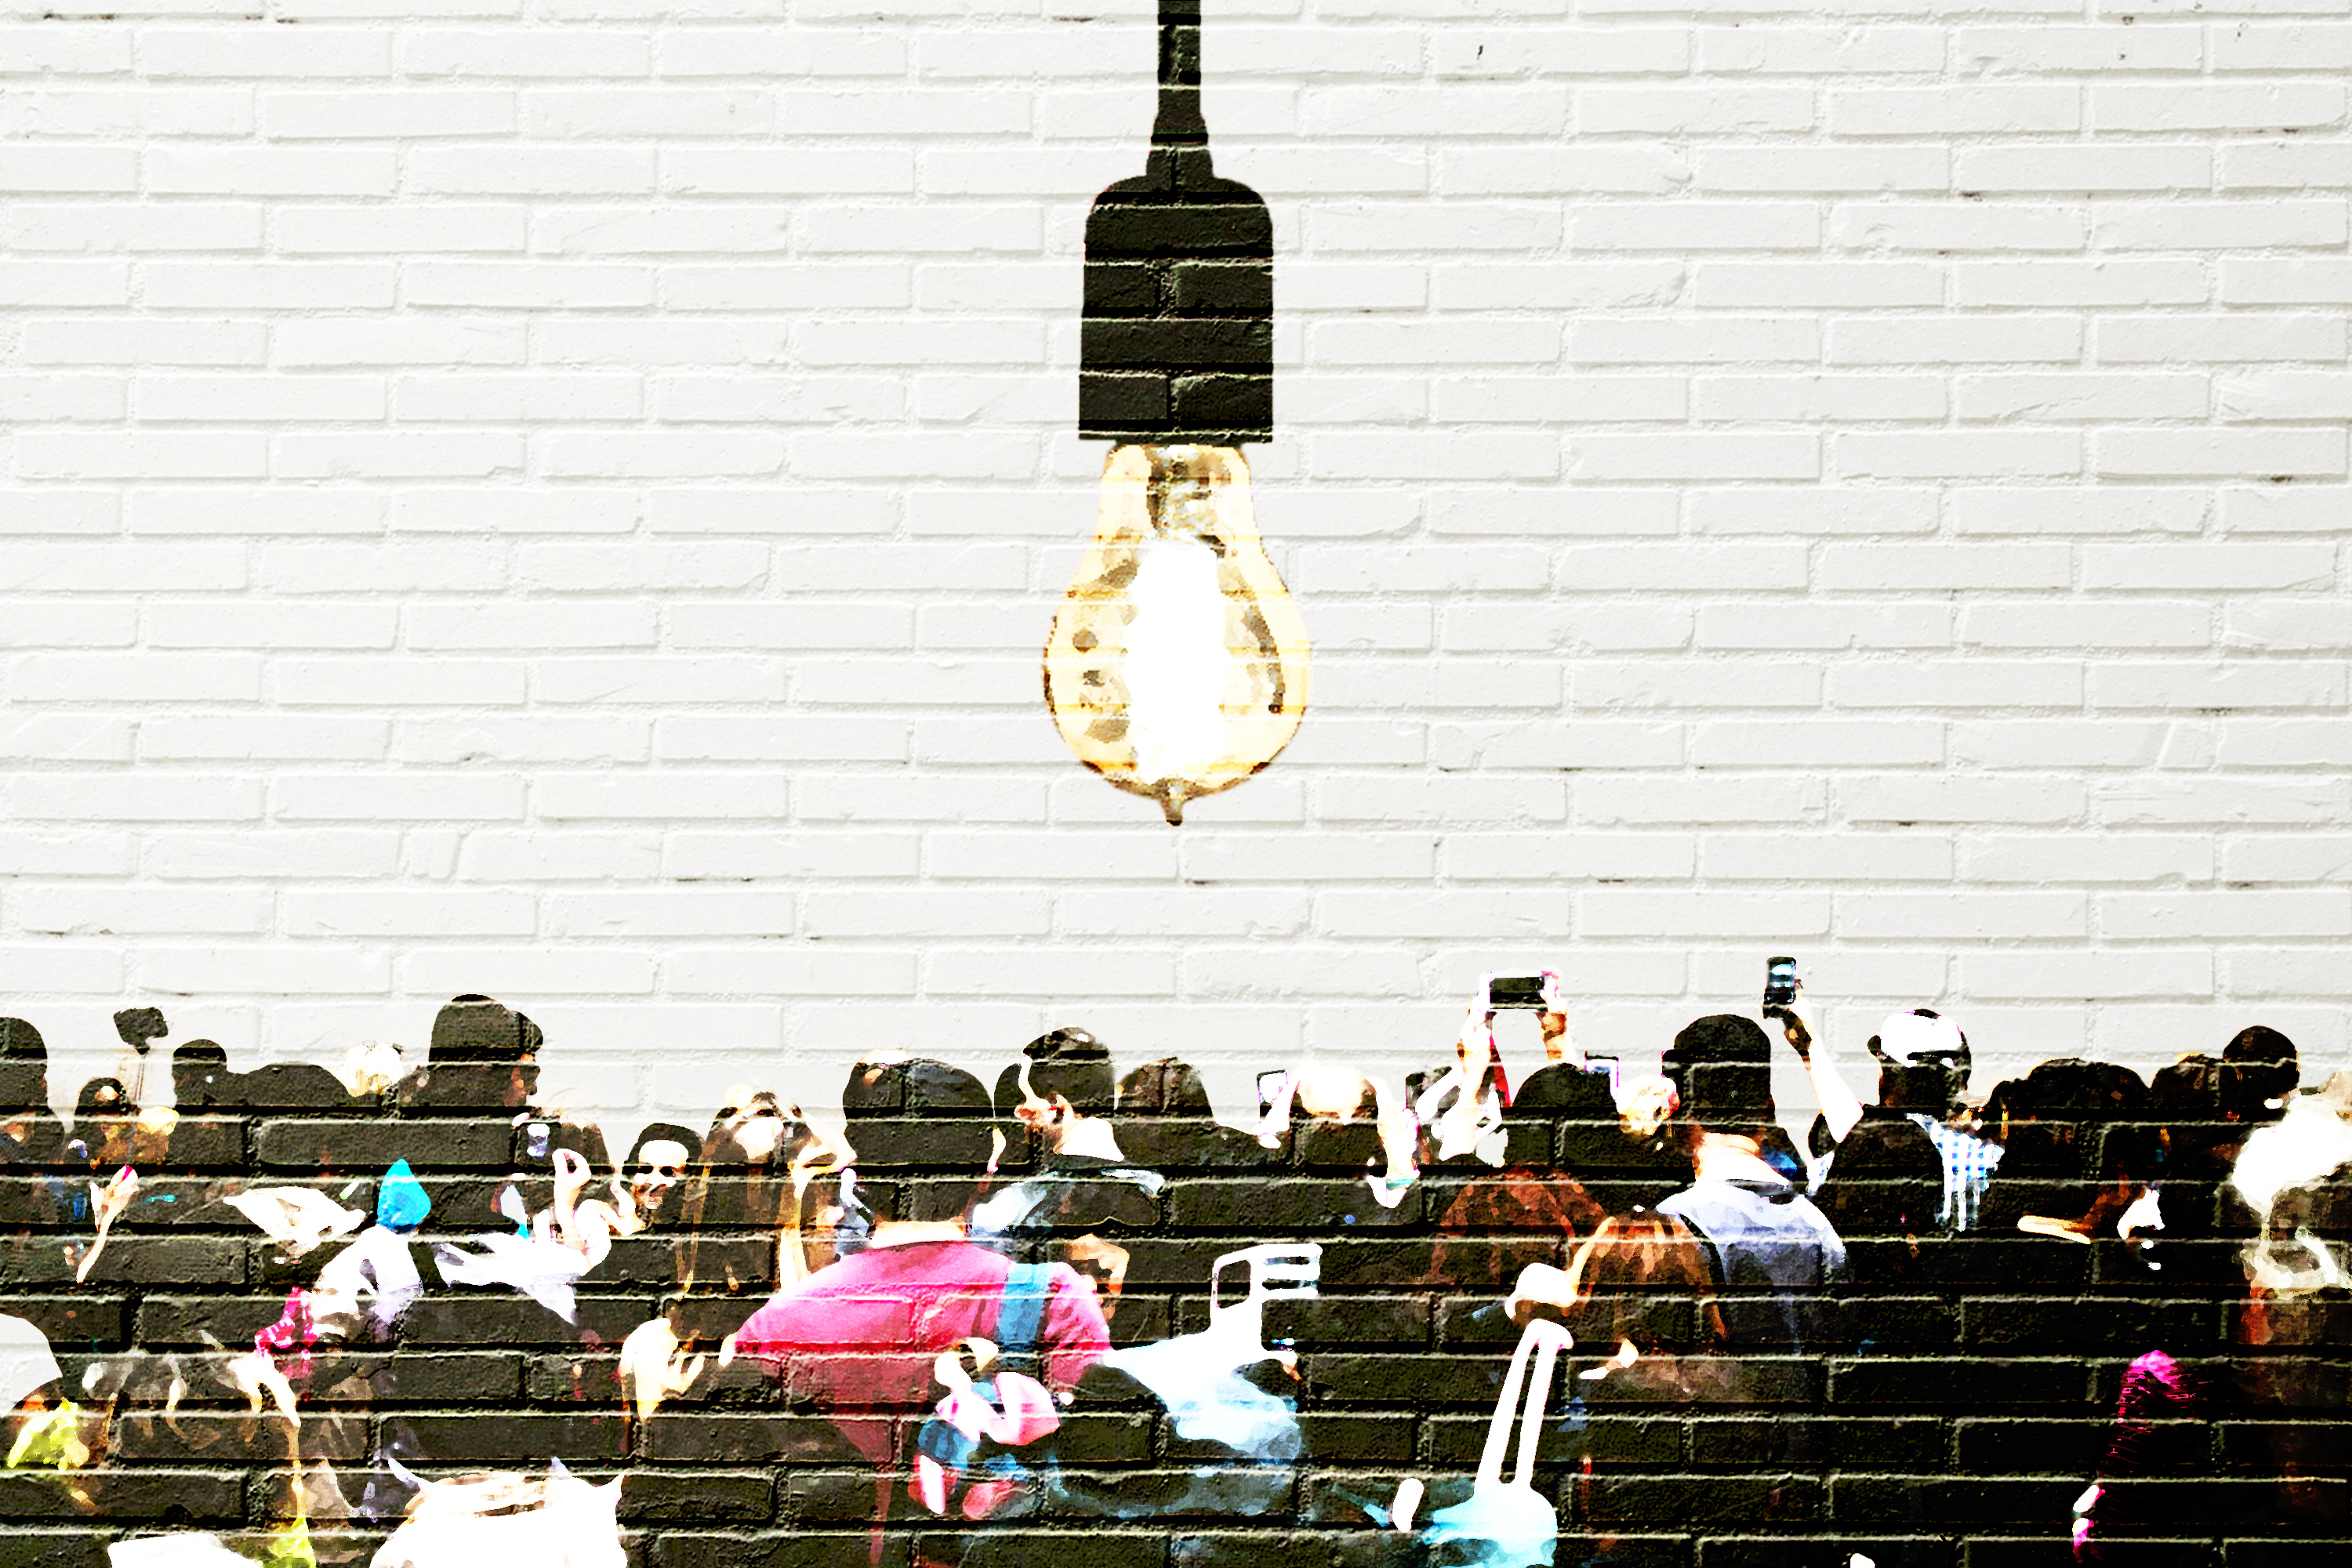 People Crowding Under A Light Bulb, Wall Art